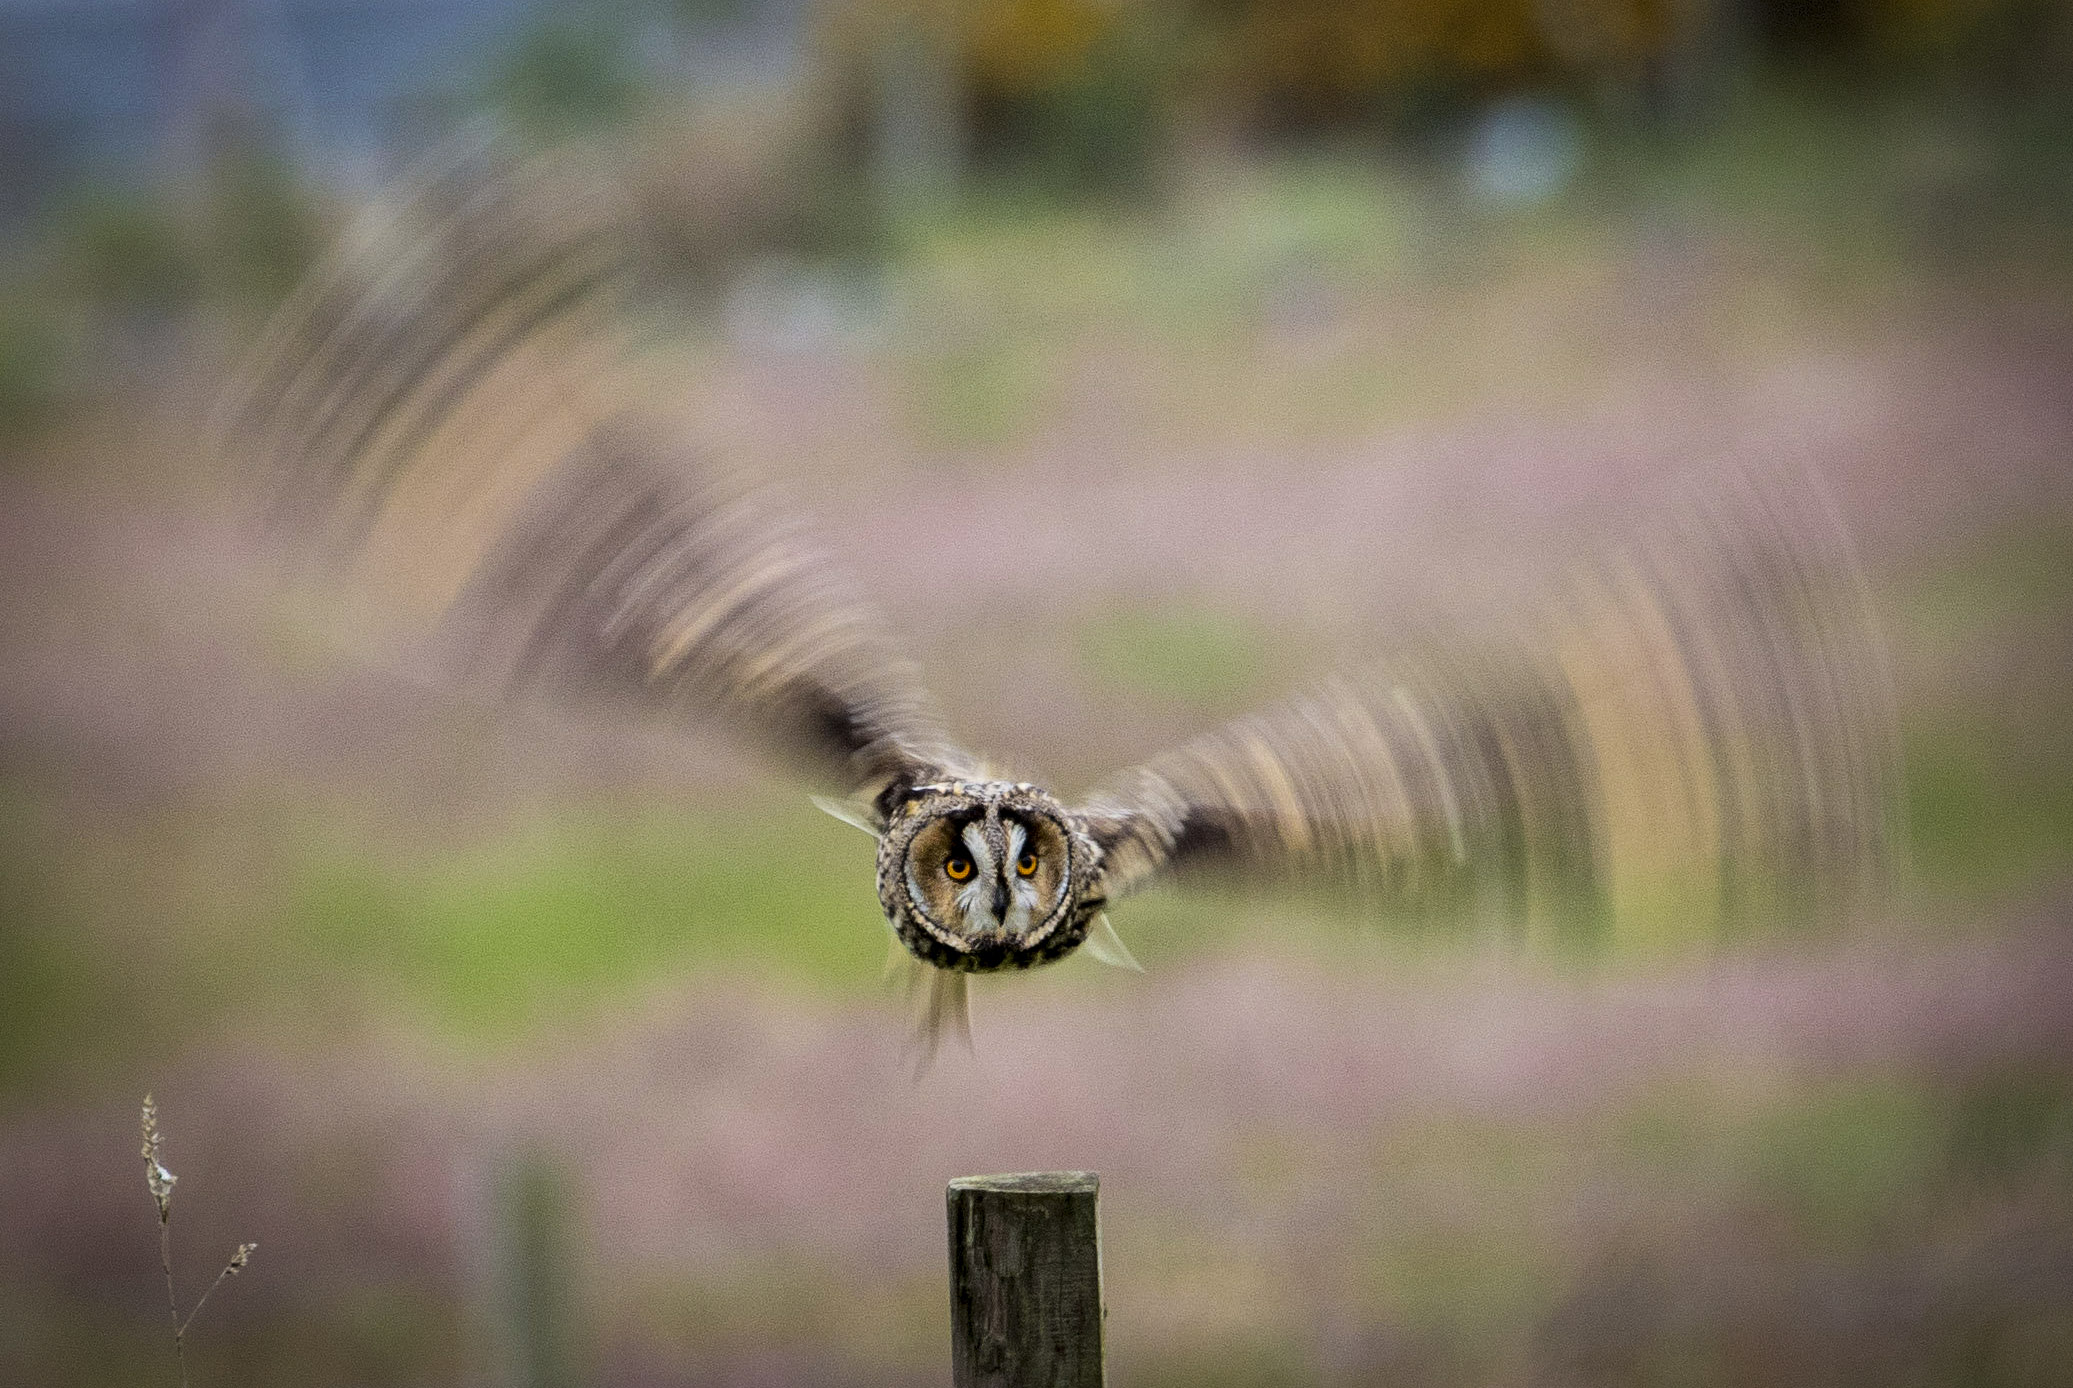 Owl in flight captured by amateur photographer Harald Huber in Inverness.